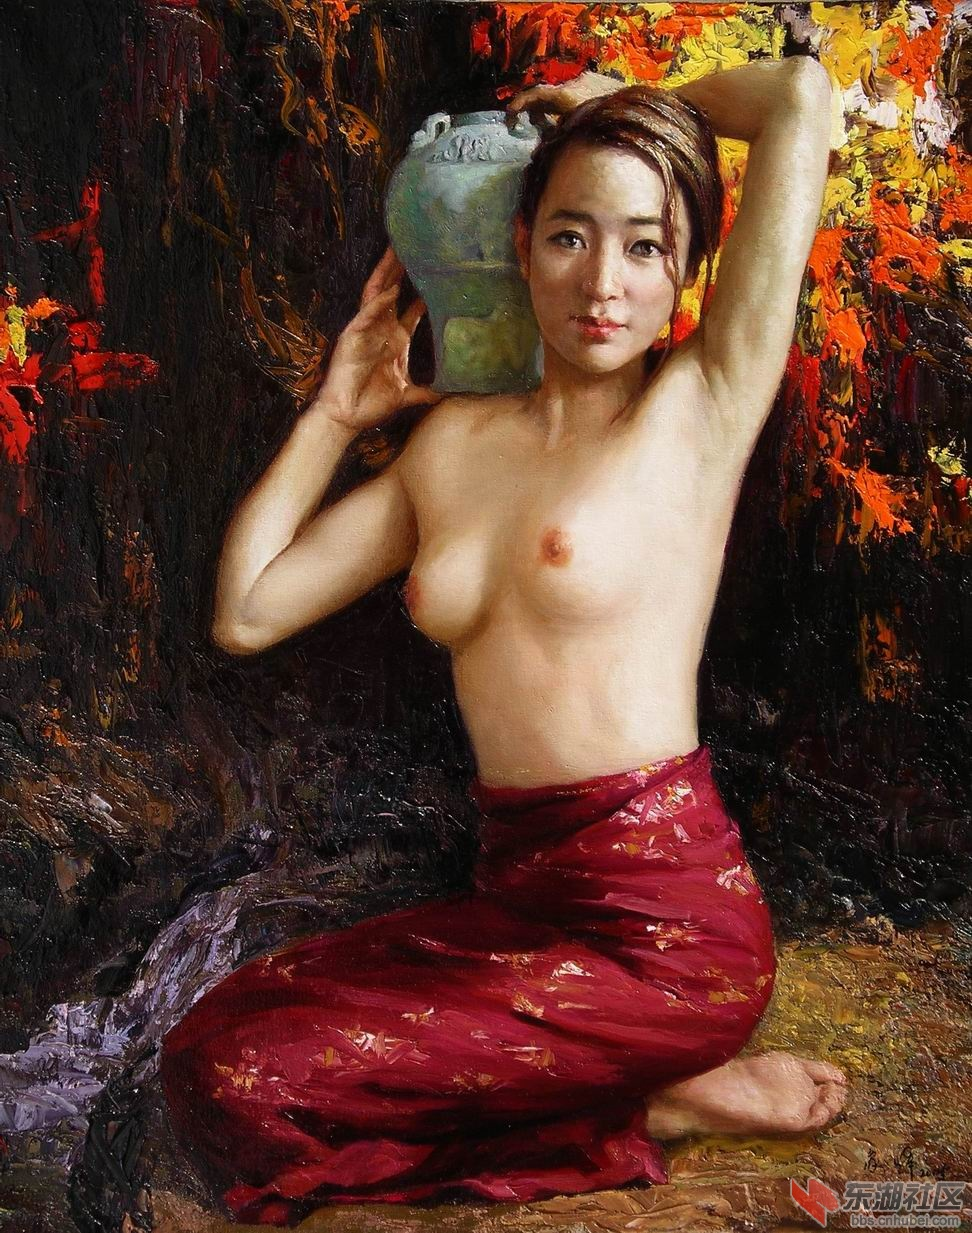 油画《梦》《倩影 qiàn ​yǐng》入选法国卢浮宫世界艺术大展获特别奖。Oil painting titled《Dream》《Beautiful image of a woman》 selected for the France Louvre, the world art exhibitions and won a Special Award.